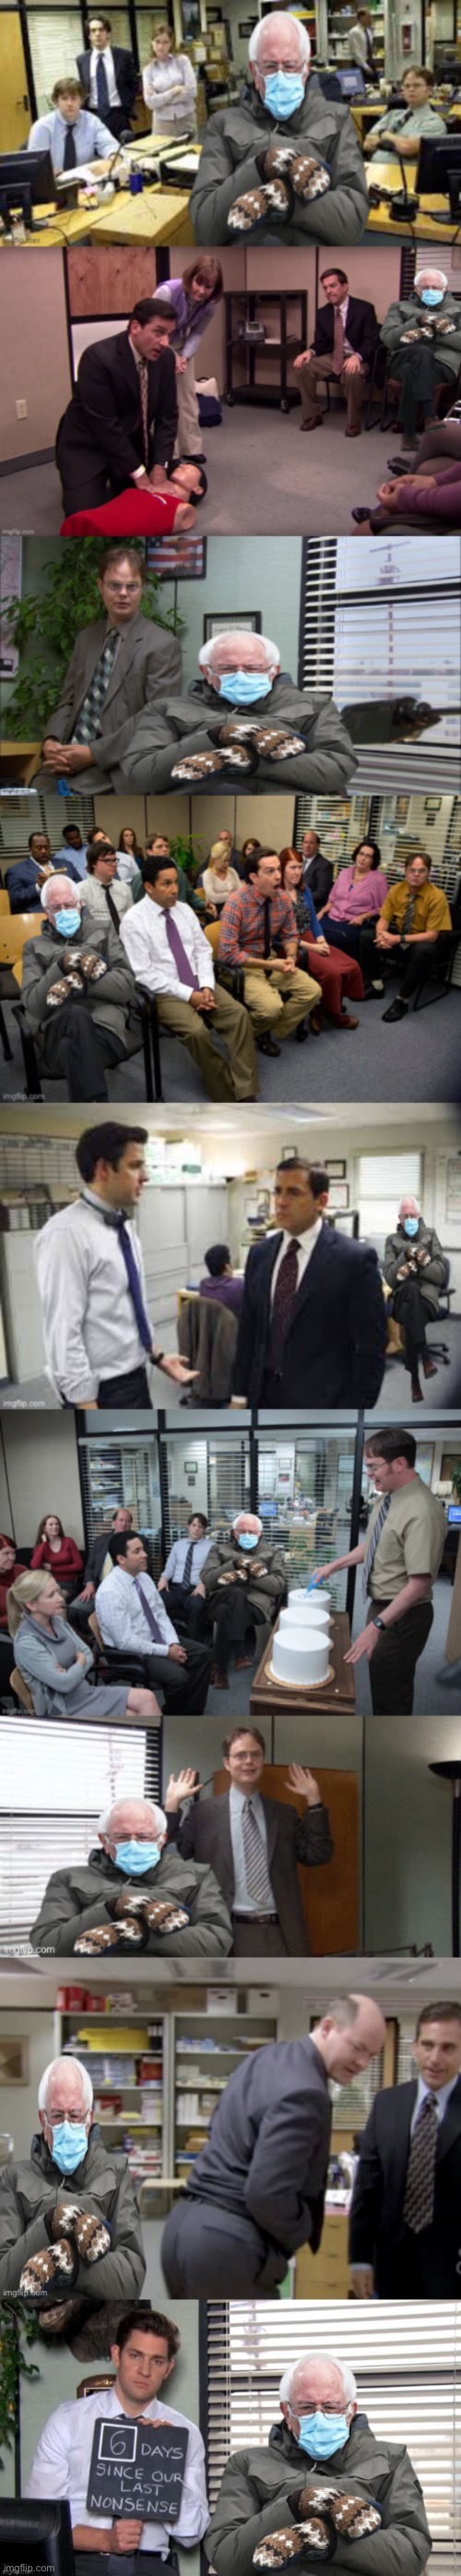 Where's Waldo The Office Edition | image tagged in bernie mittens,the office,bernie sanders,where's waldo,michael scott,viral meme | made w/ Imgflip meme maker